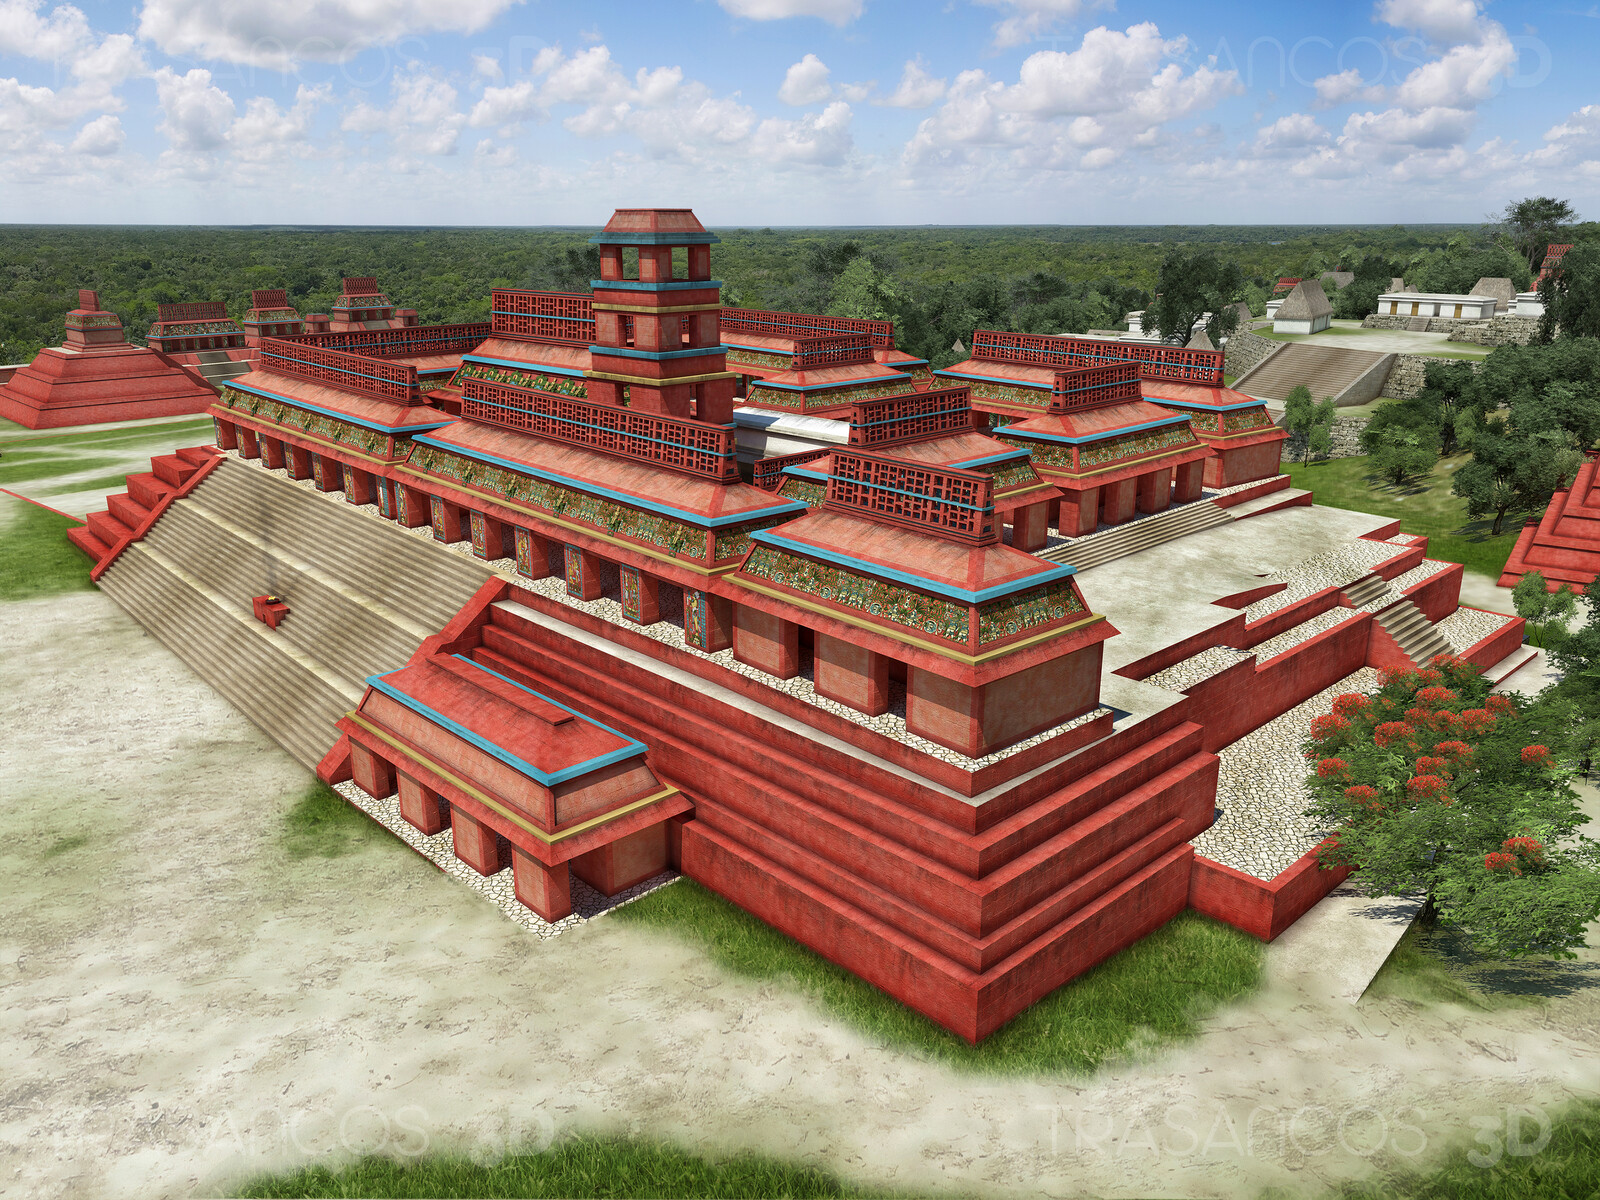 Reconstruction of the Palace of Palenque. Modeled in collaboration with: - Diego Blanco